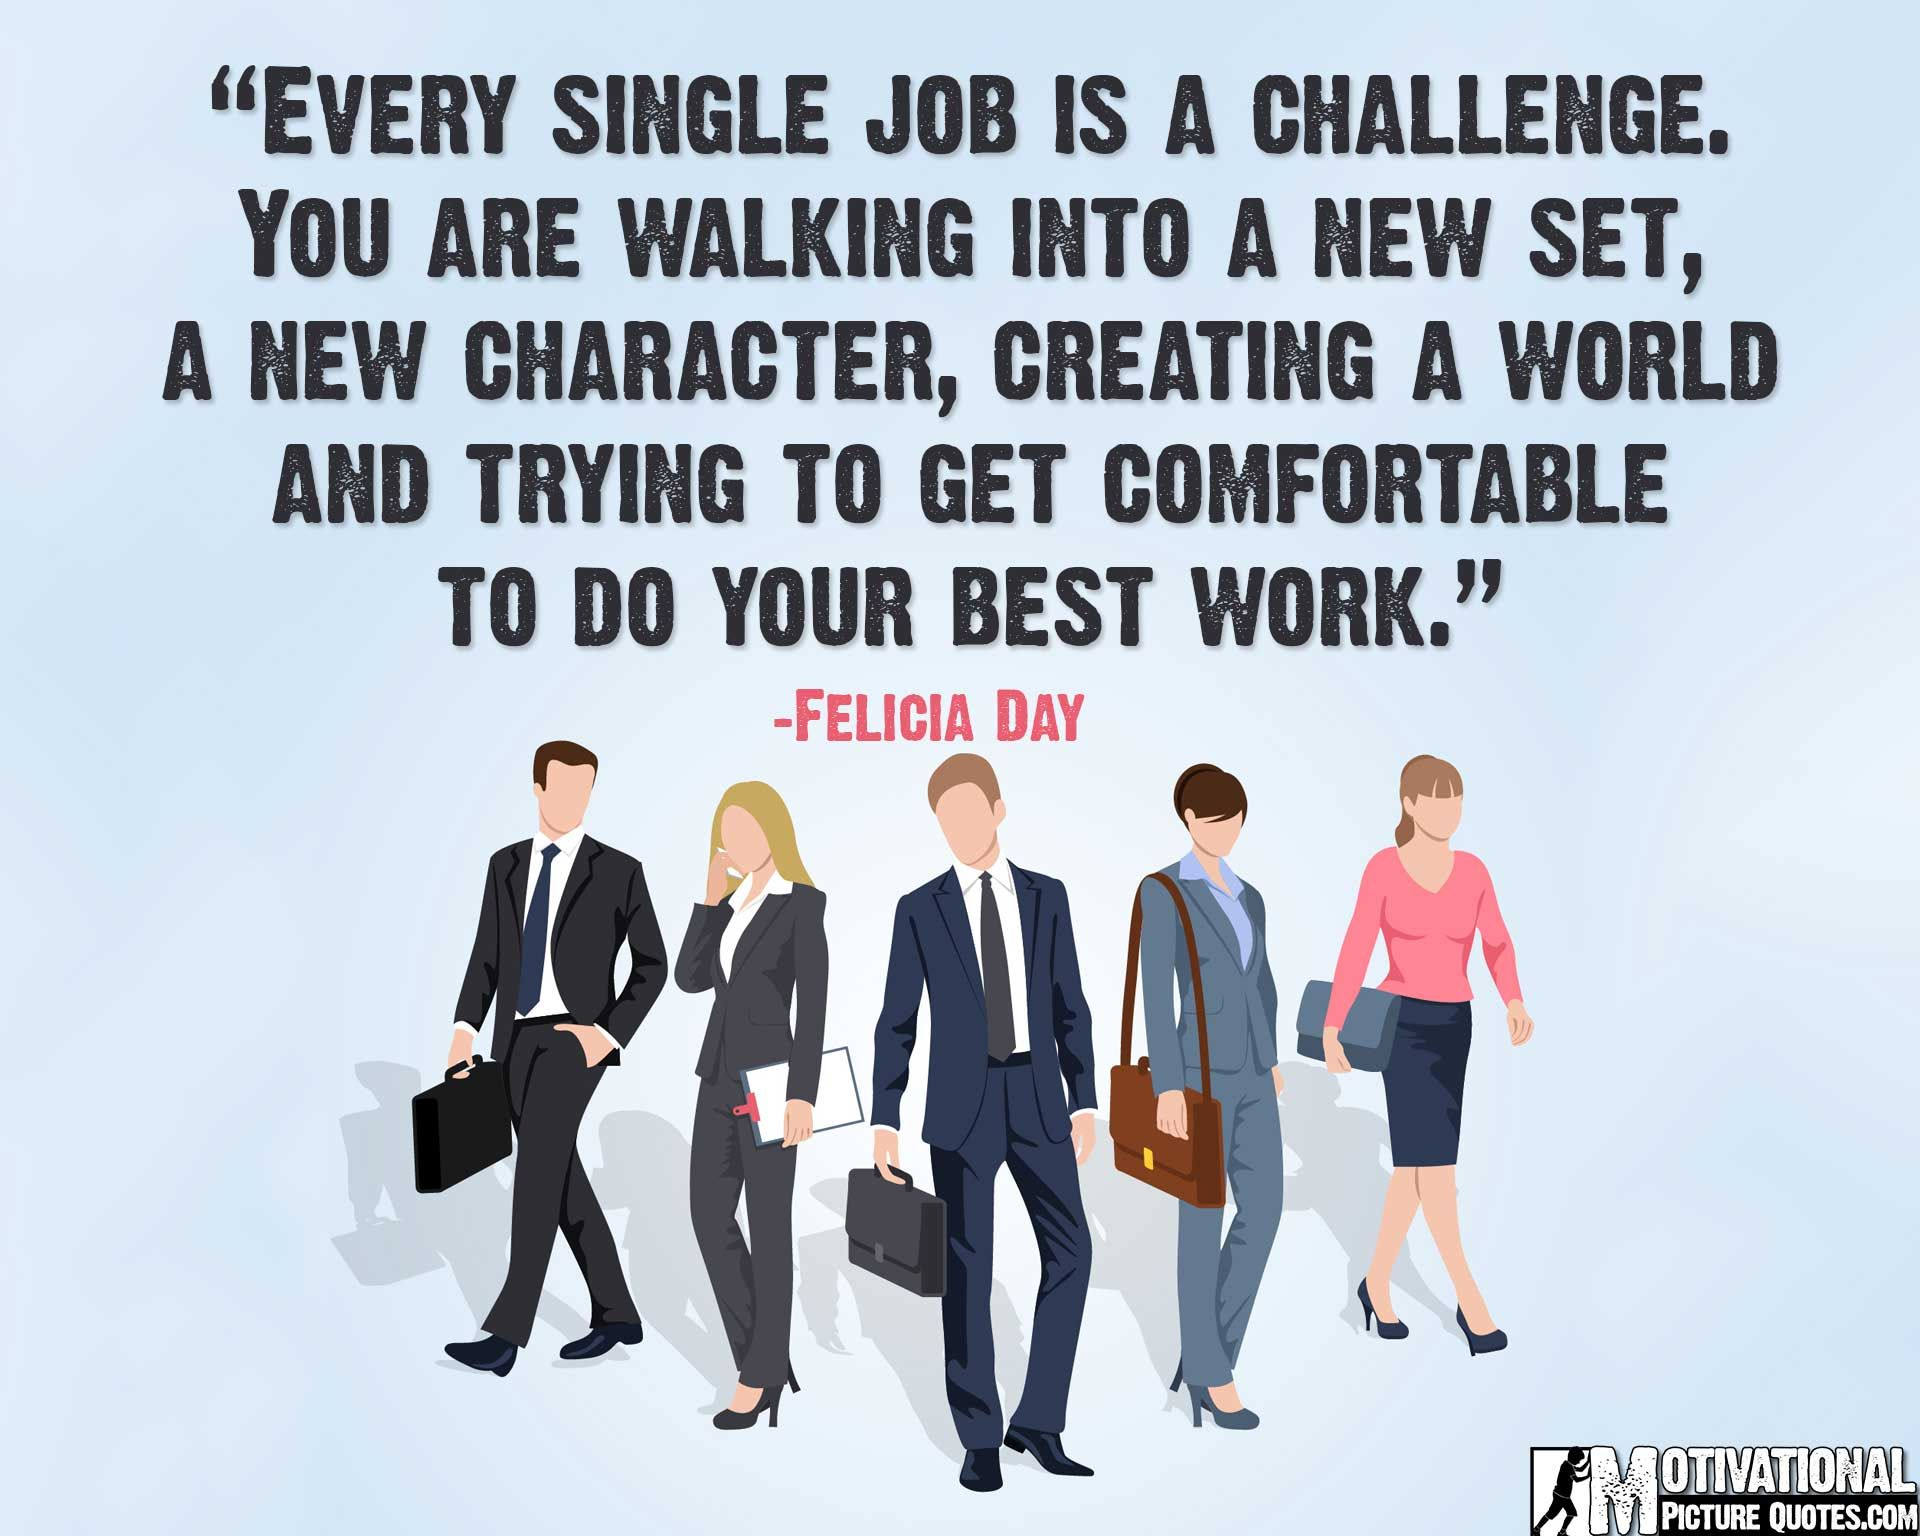 felicia day quote for job job quotes images best job satisfaction and motivational quotes images for everyday inspiration in life a collection of famous job motivation quotes for employee